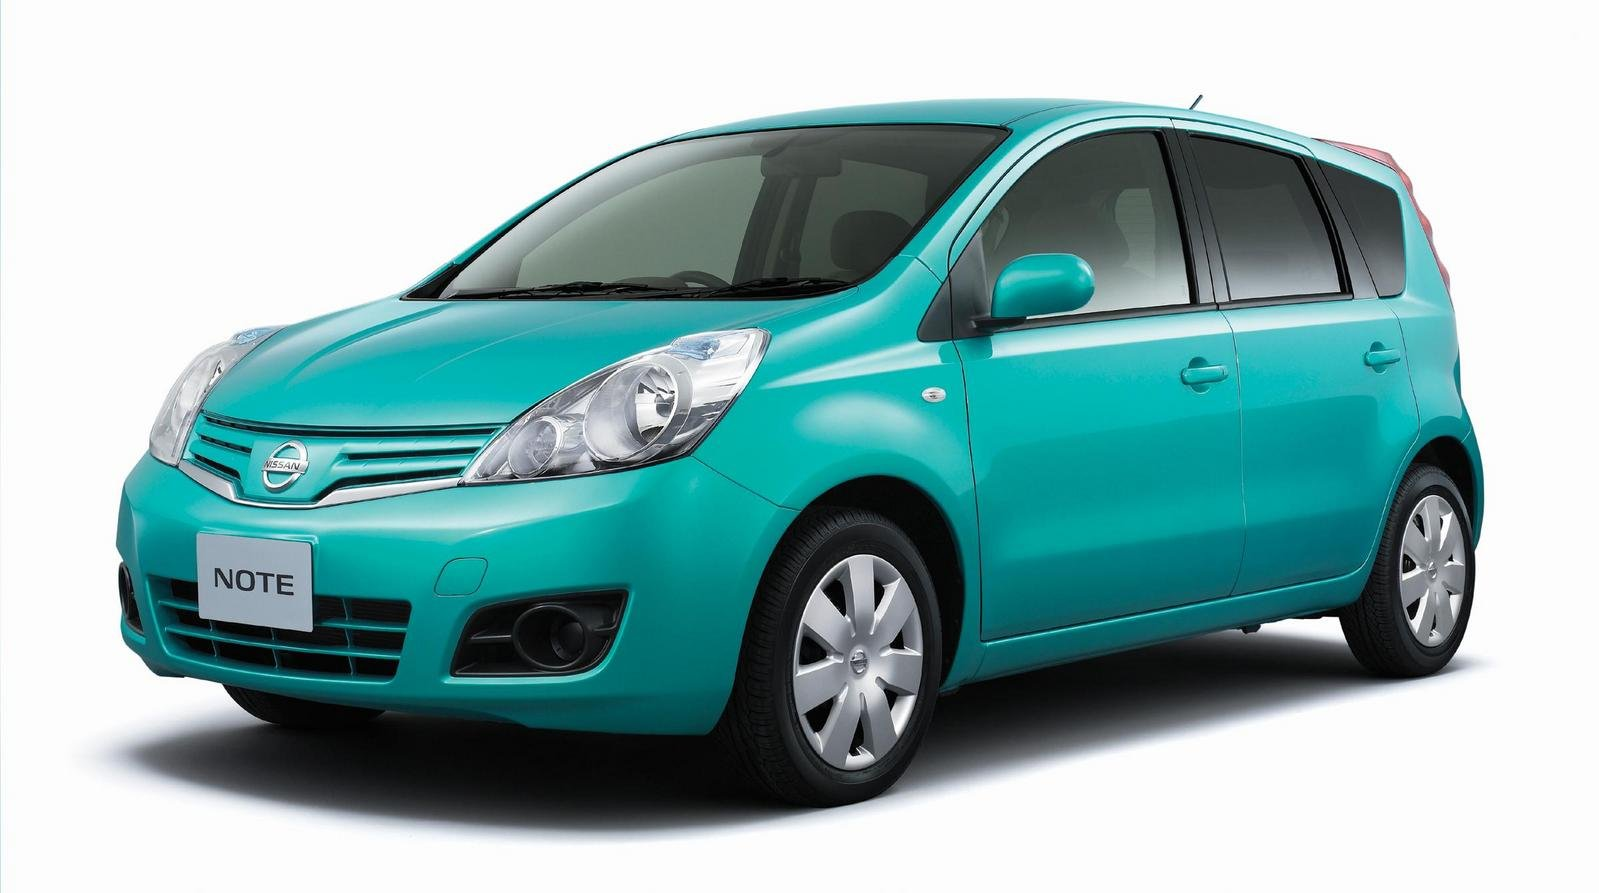 2008 nissan note picture 224130 car review top speed. Black Bedroom Furniture Sets. Home Design Ideas